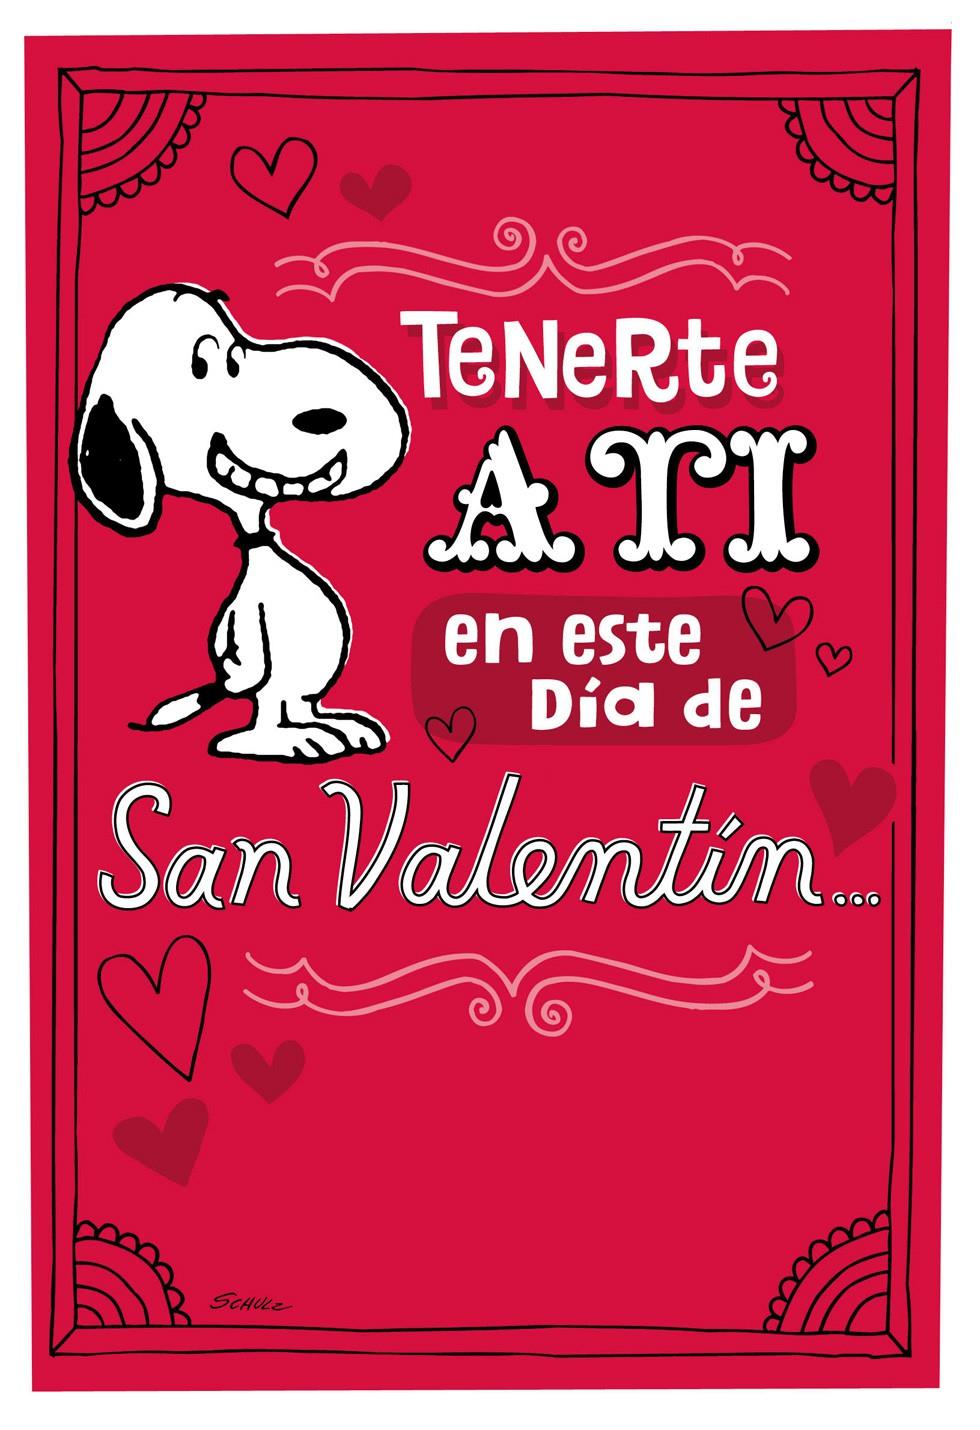 Peanuts Snoopy Happy Dance Spanish Valentines Day Card